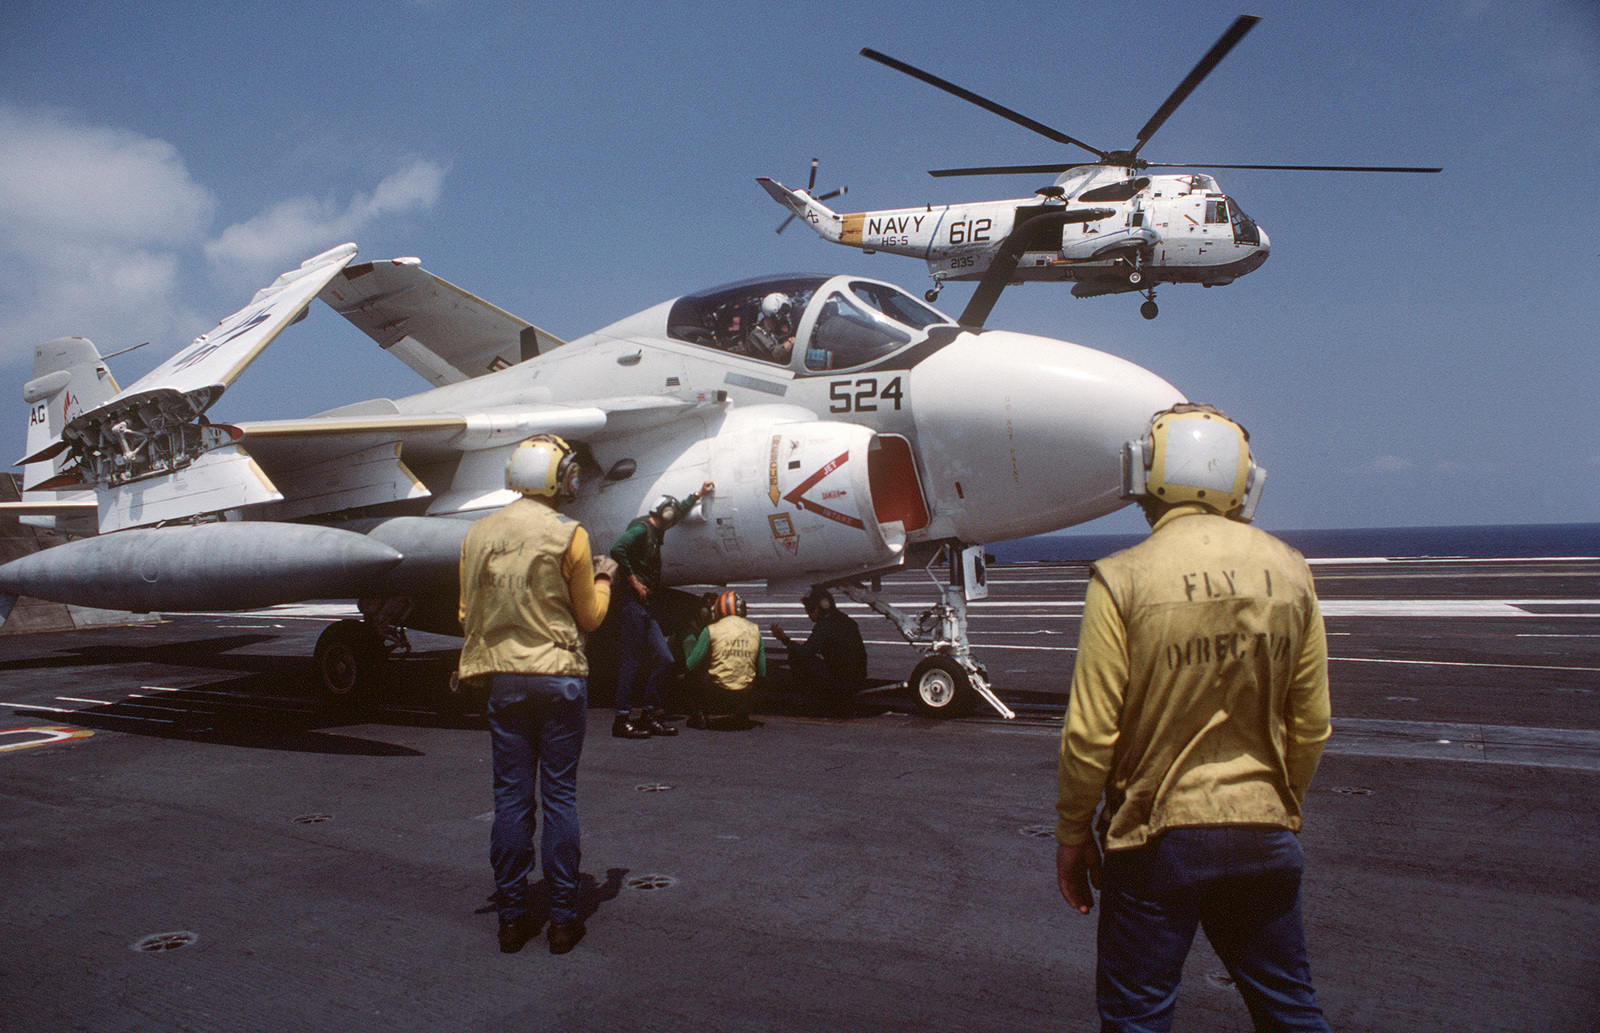 Catapult crewmen work beneath an A-6E Intruder aircraft aboard the nuclear-powered aircraft carrier USS DWIGHT D. EISENHOWER (CVN 69) as two plane directors stand by.  A Helicopter Anti-submarine Squadron 5 (HS-5) SH-3H Sea King helicopter is taking off in the background